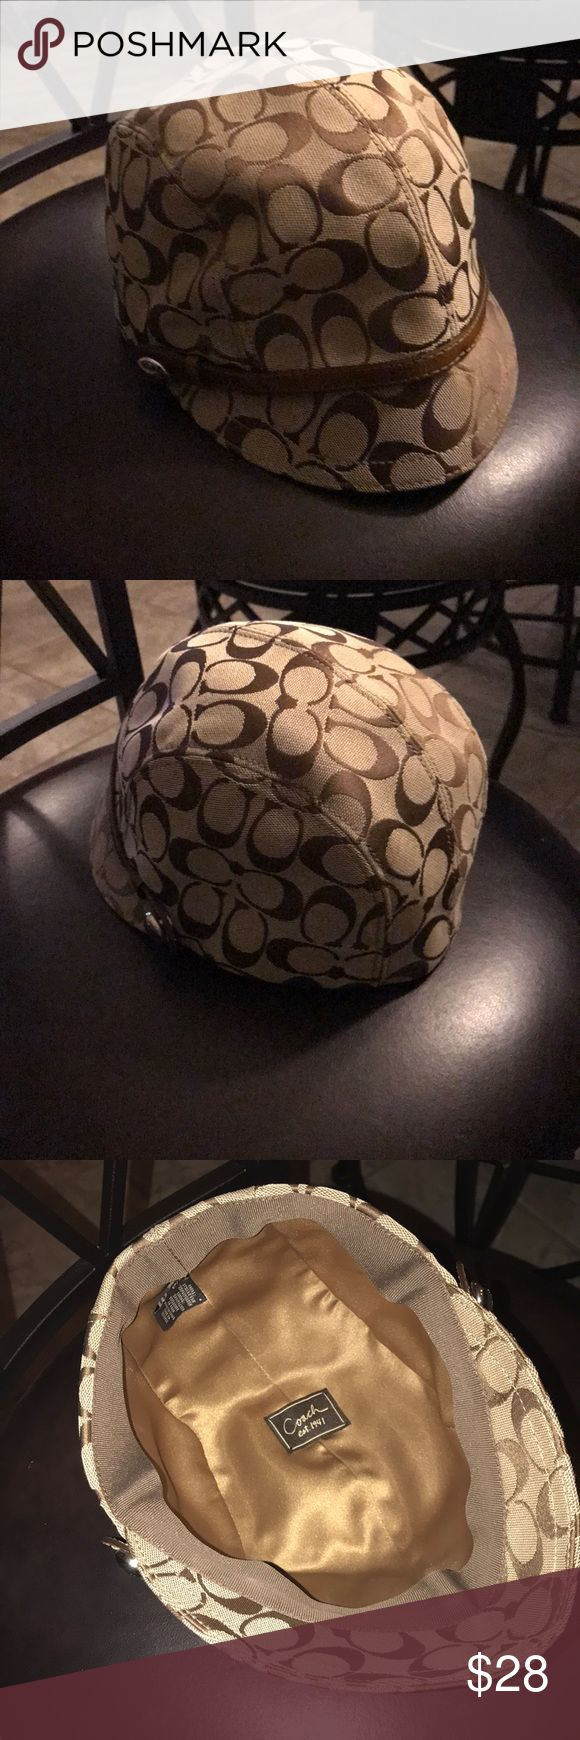 Newsboy Authentic Coach Hat Tan and brown Authentic Newsboy Coach hat. Excellent condition never wore it! Size p/s Coach Accessories Hats